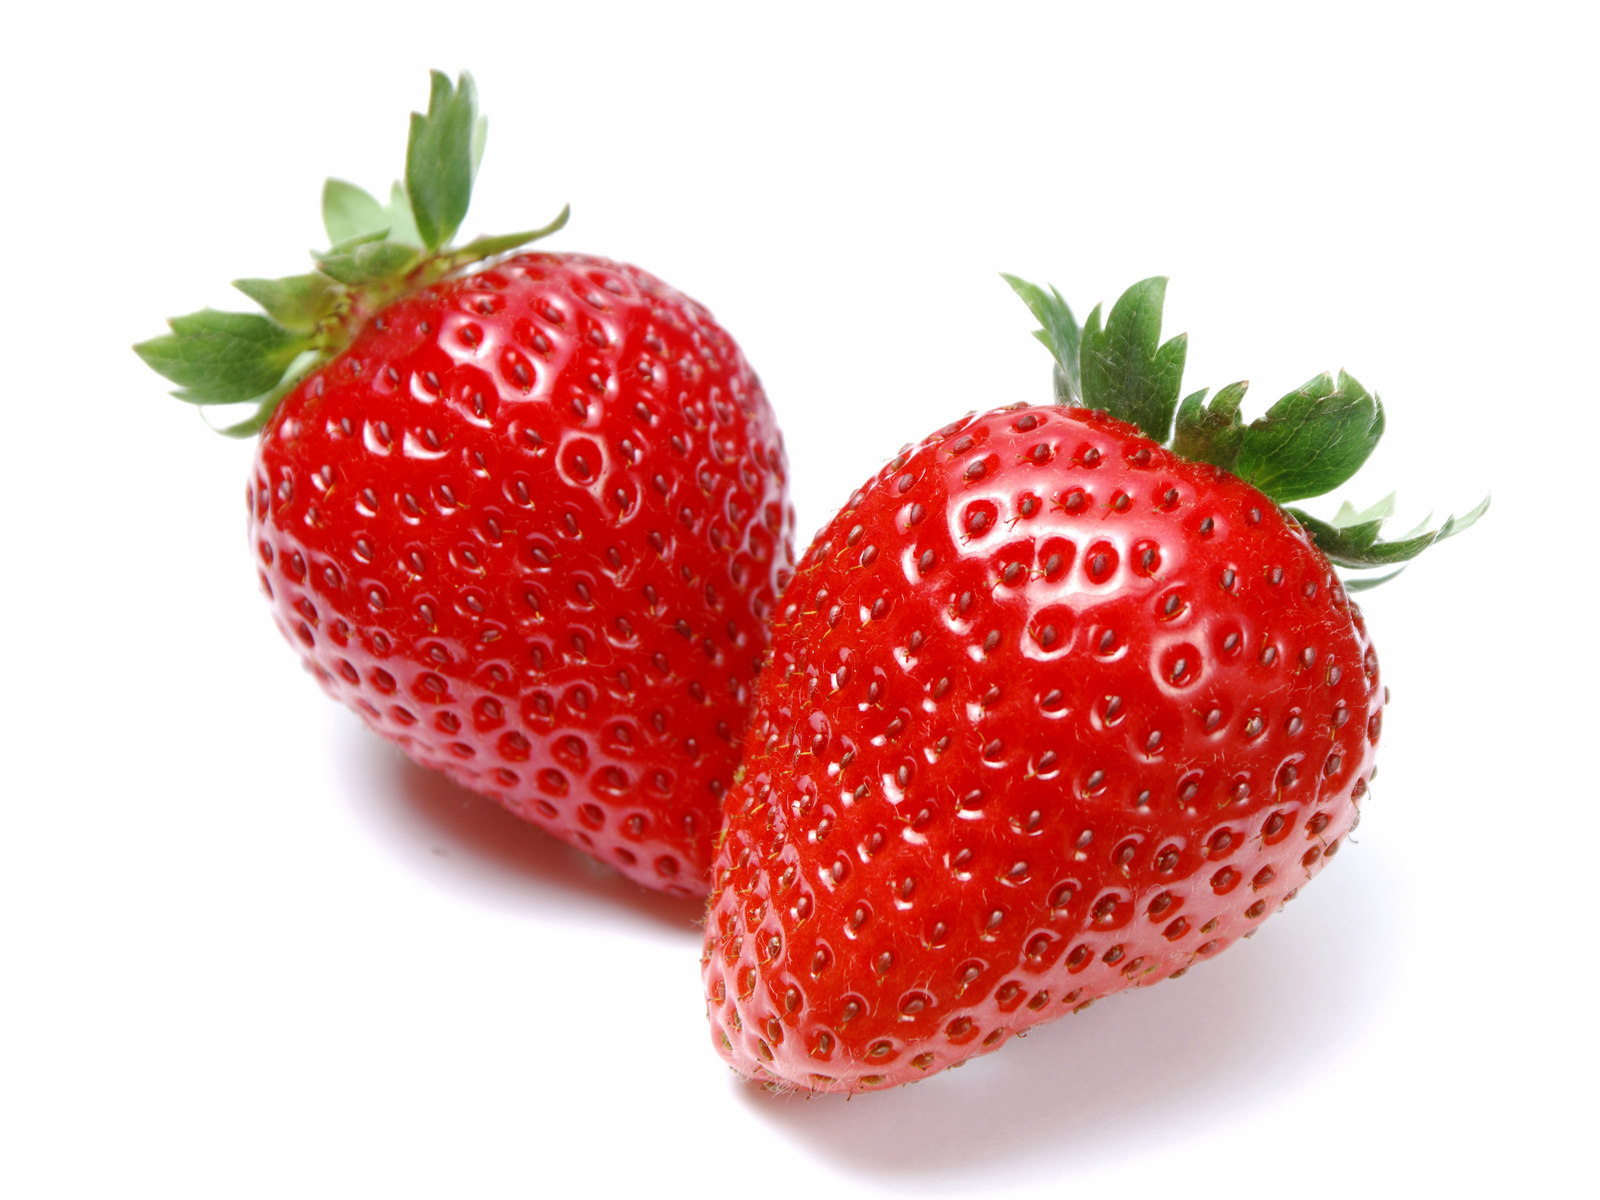 When Content is Like a Big, Red Strawberry - That Tastes Like Nothing